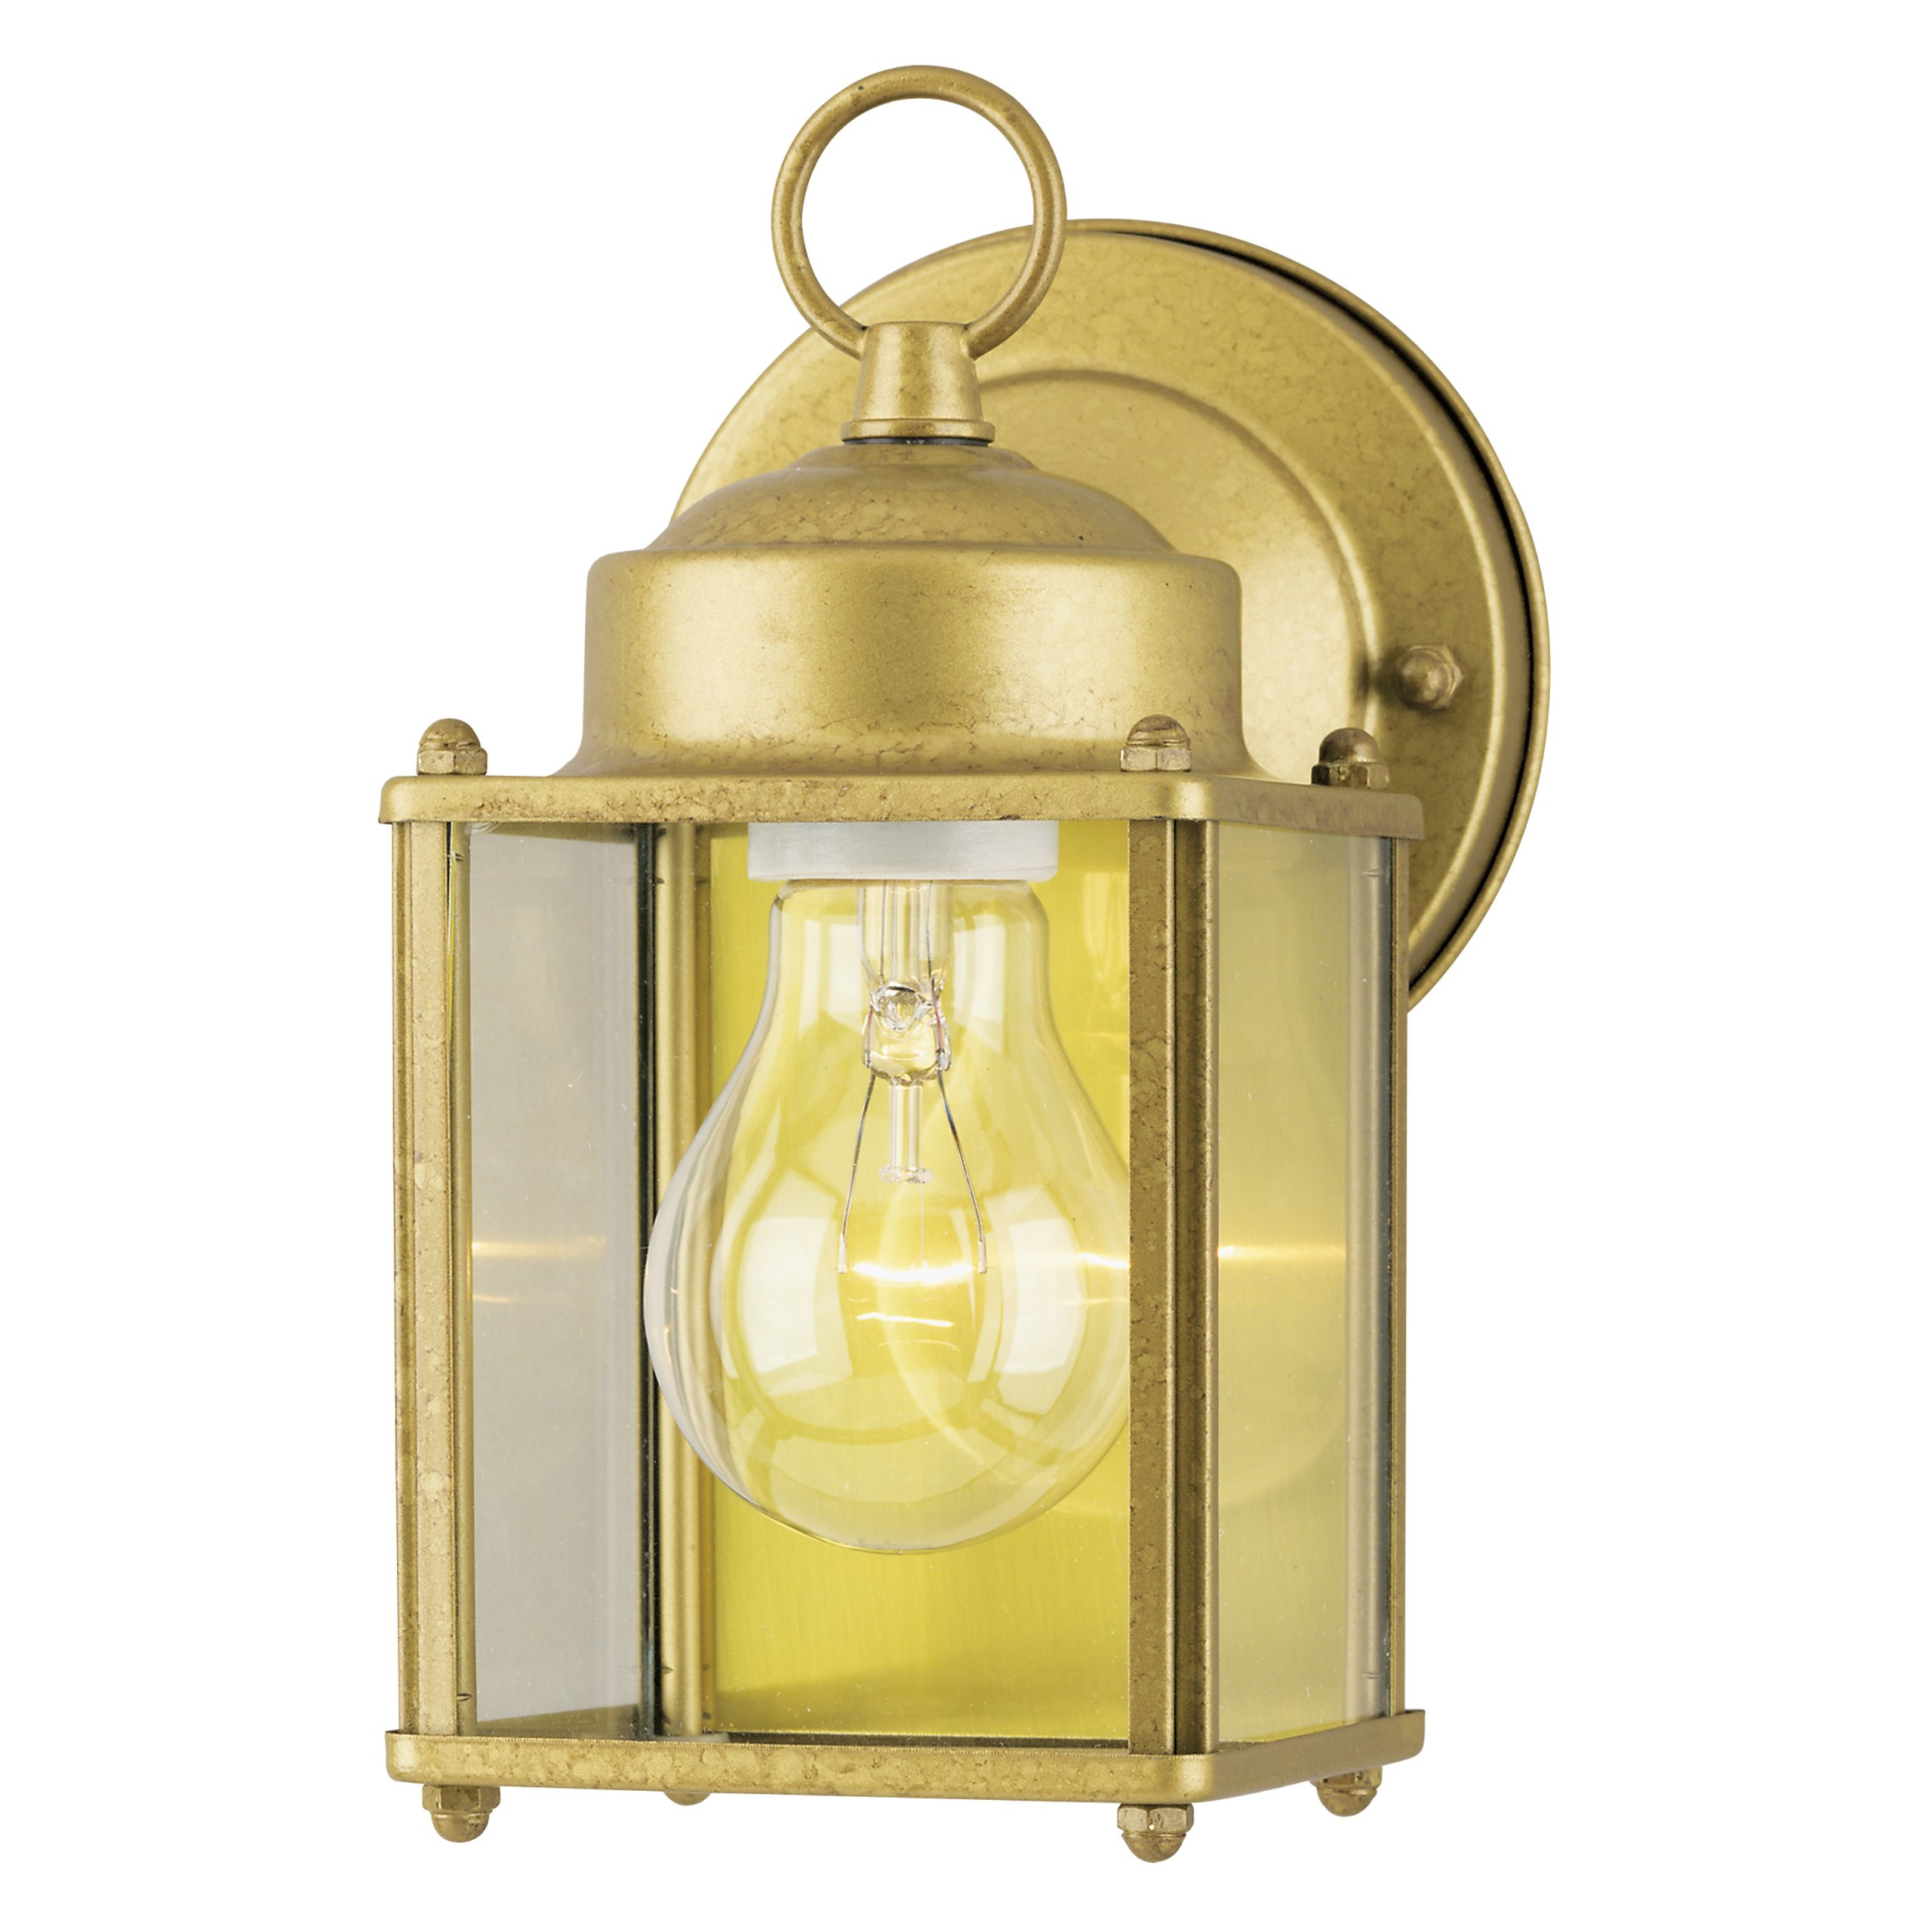 Westinghouse 6693800 One-Light Exterior Wall Lantern, Goldenrod Finish on Steel with Clear Glass Panels